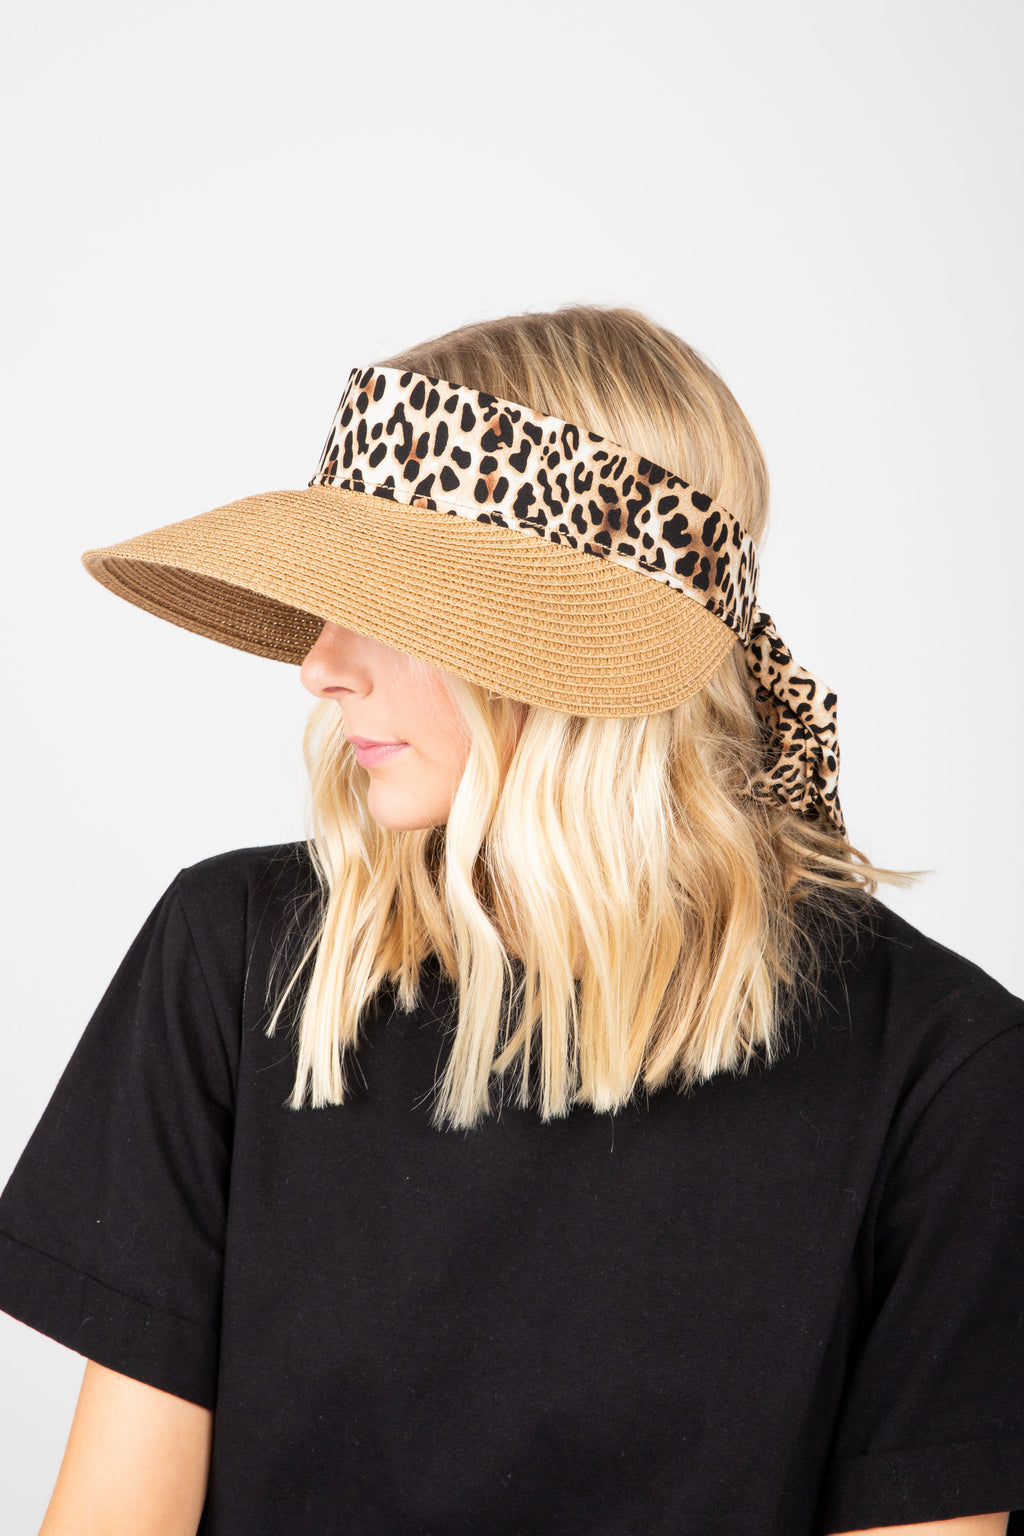 Hat No. 32: Tie Back Viser in Leopard